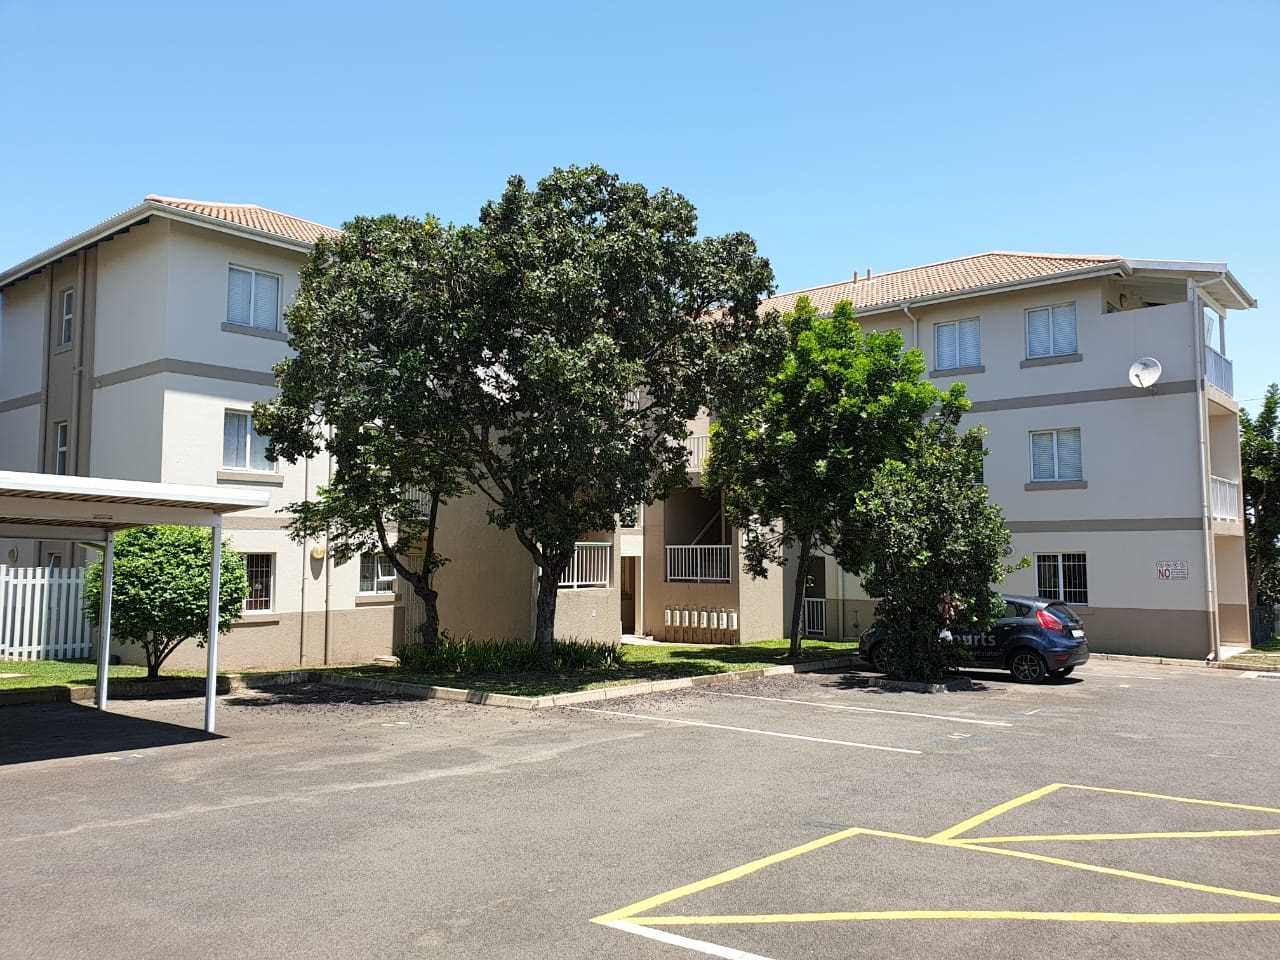 1 Bedroom apartment in Secure Estate for sale